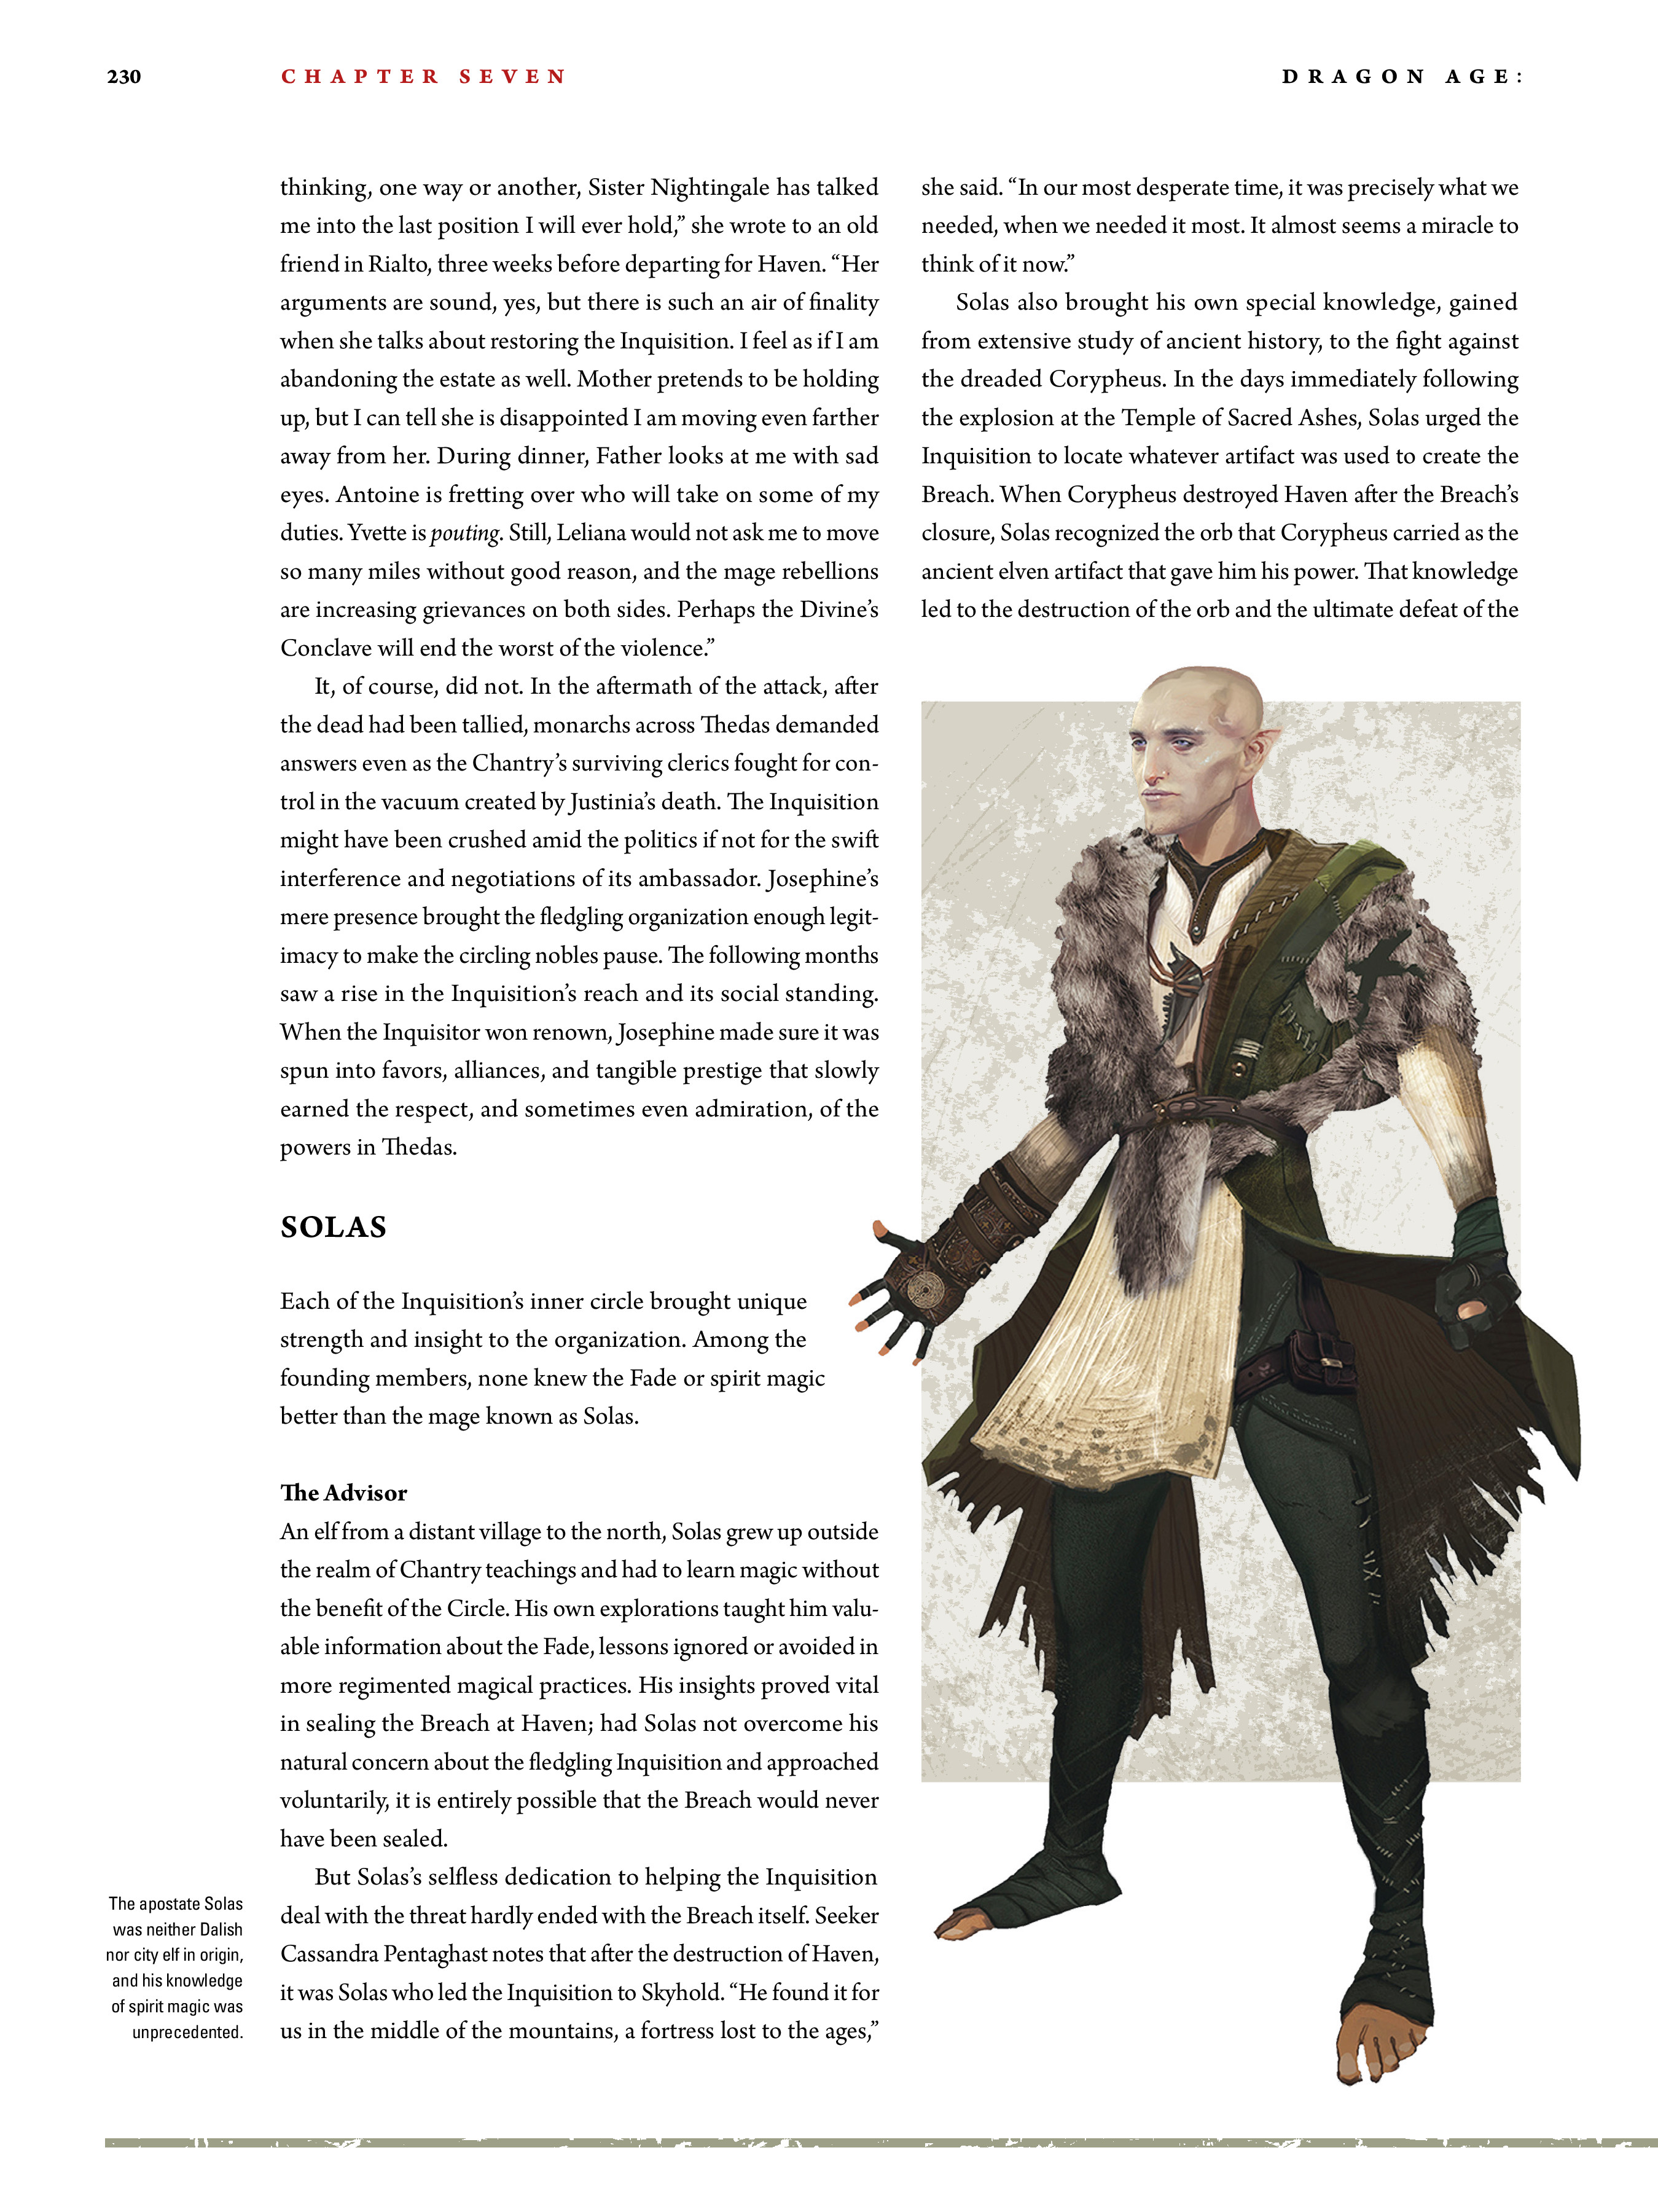 Read online Dragon Age: The World of Thedas comic -  Issue # TPB 2 - 225